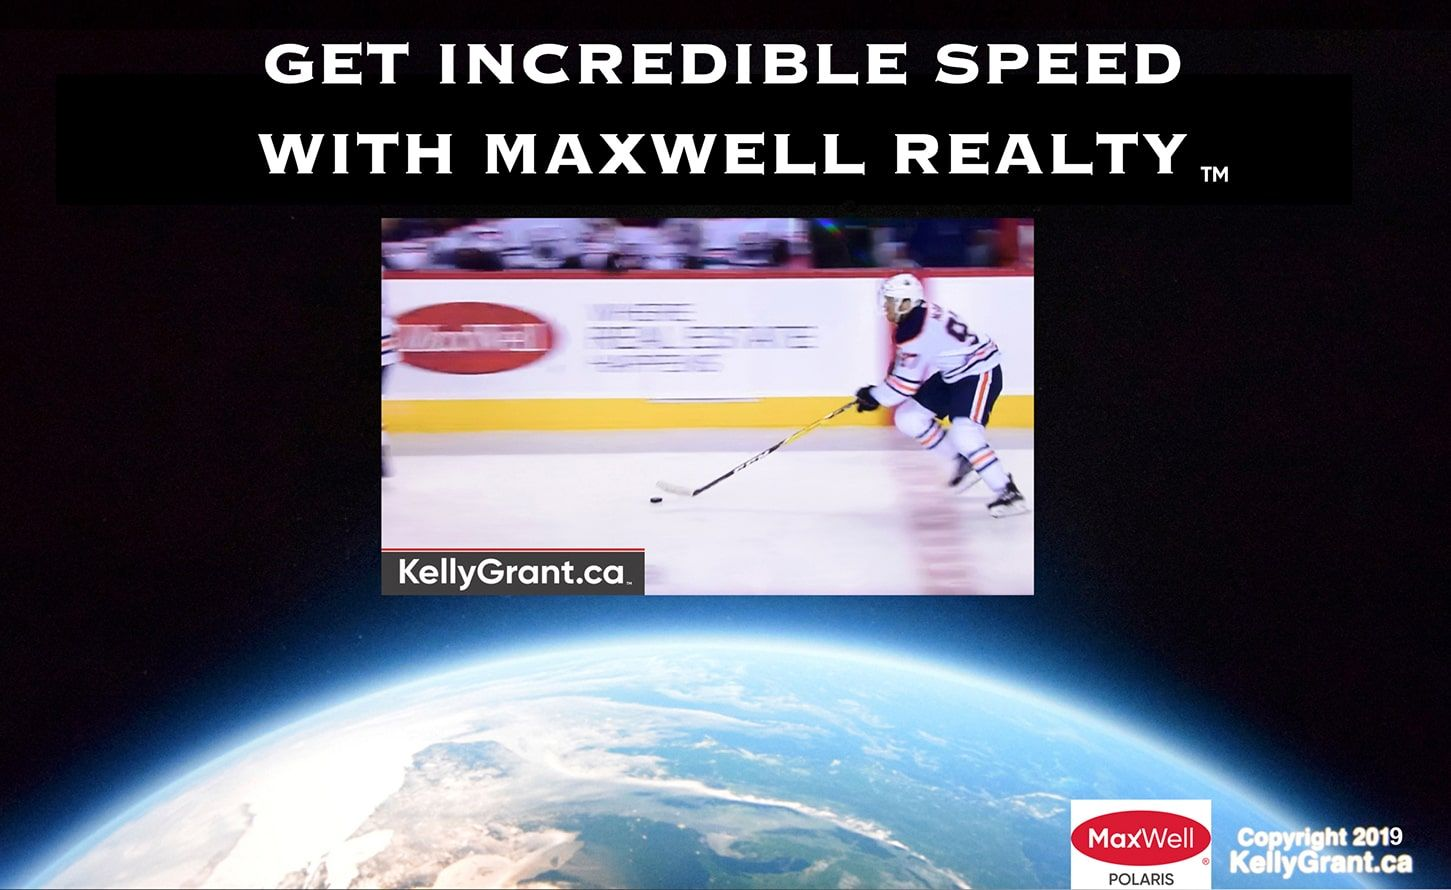 #25-KG MaxWell Incredible Speed.jpg